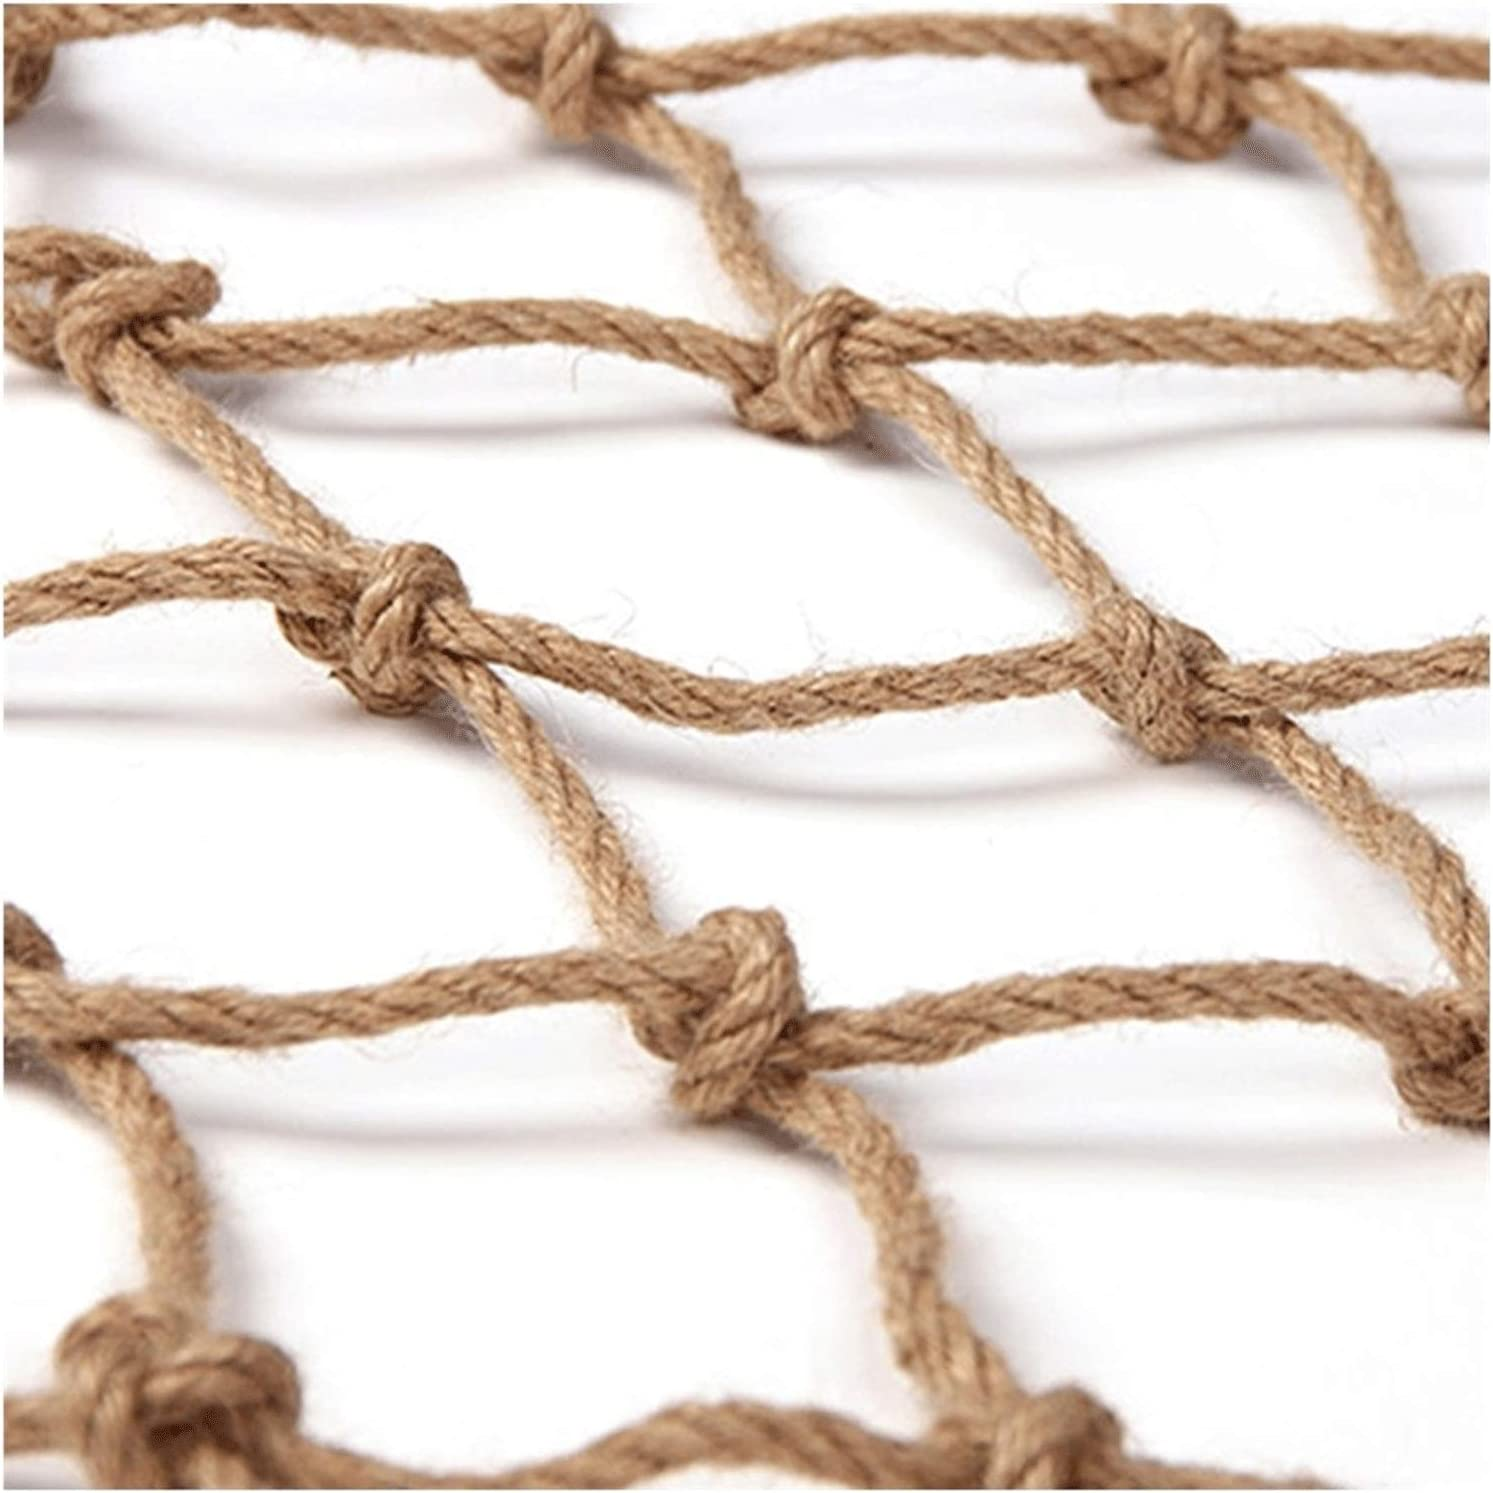 Climbing net Rope Quantity limited Decorative Hemp Woven - Net Be super welcome